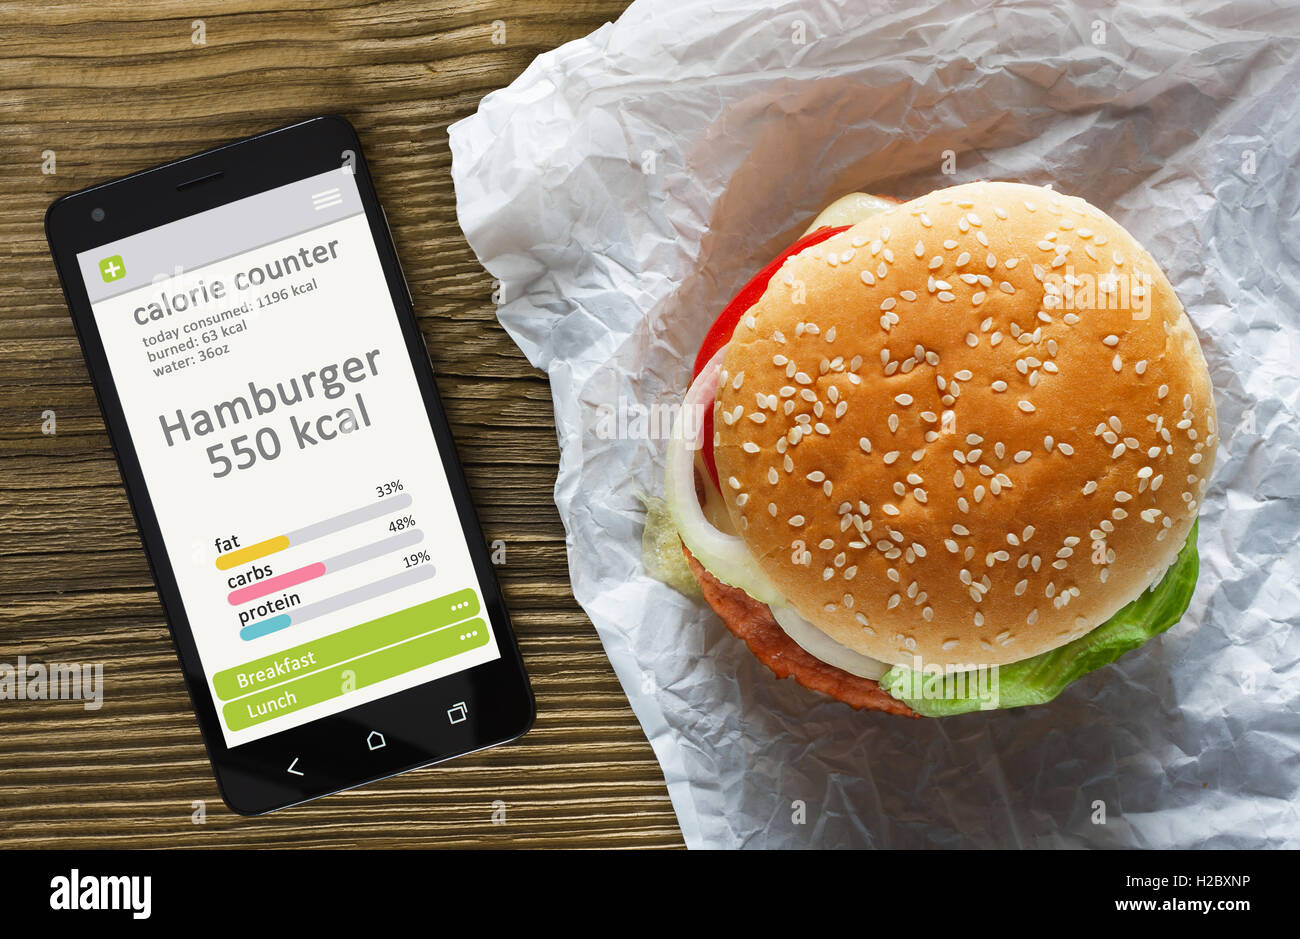 Calorie counter concept - mobile phone with calorie counter app on the screen and hamburger. Wooden table as background - Stock Image